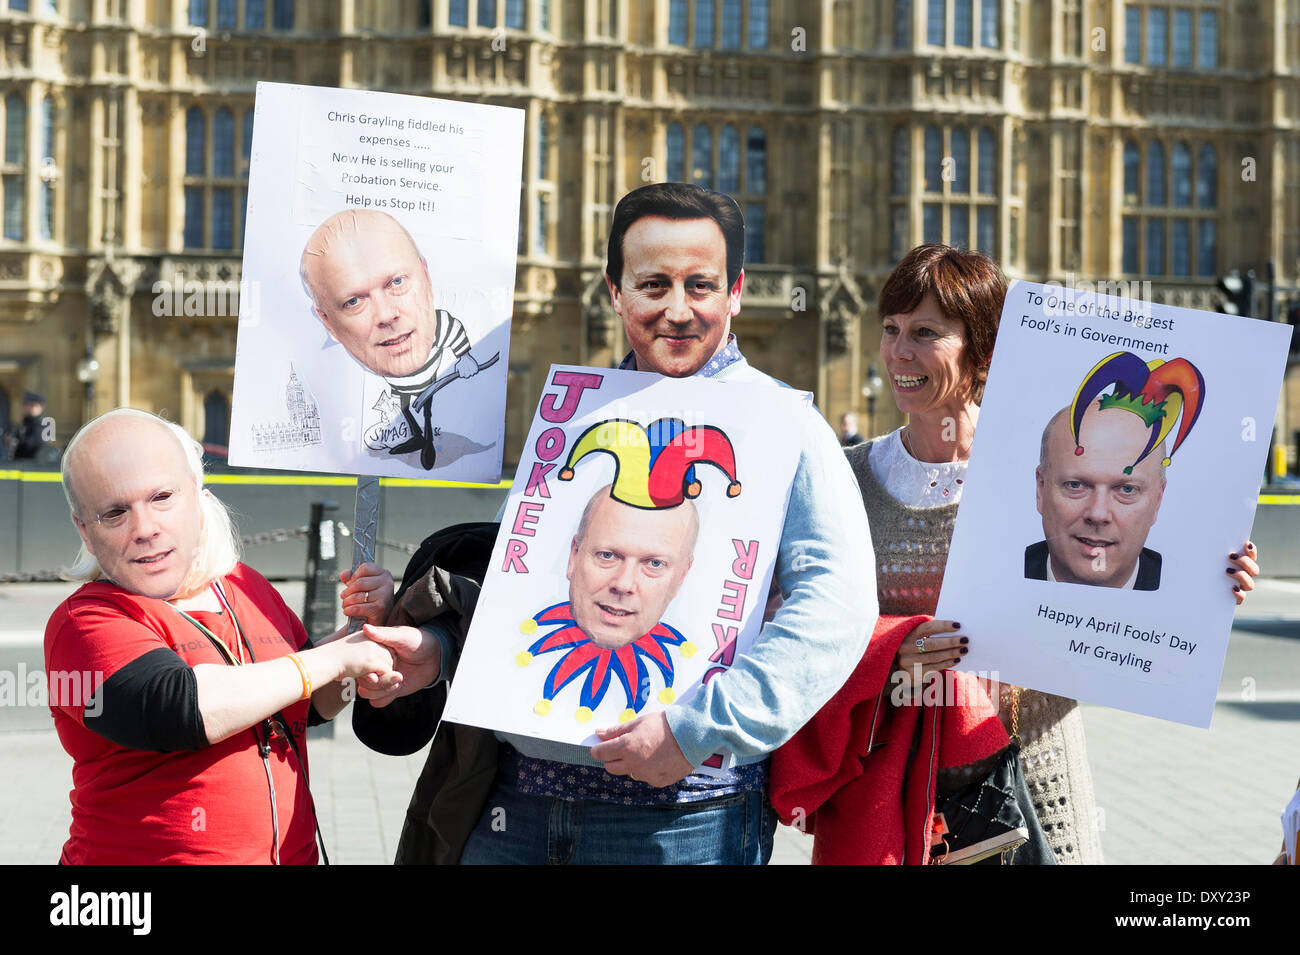 London, UK. 1st April 2014. Protesters outside the Houses of Parliament wear masks of David Cameron and Chris Grayling as part of the joint demonstration by probation officers and legal aid solicitors. Photographer: Gordon Scammell/Alamy Live News - Stock Image